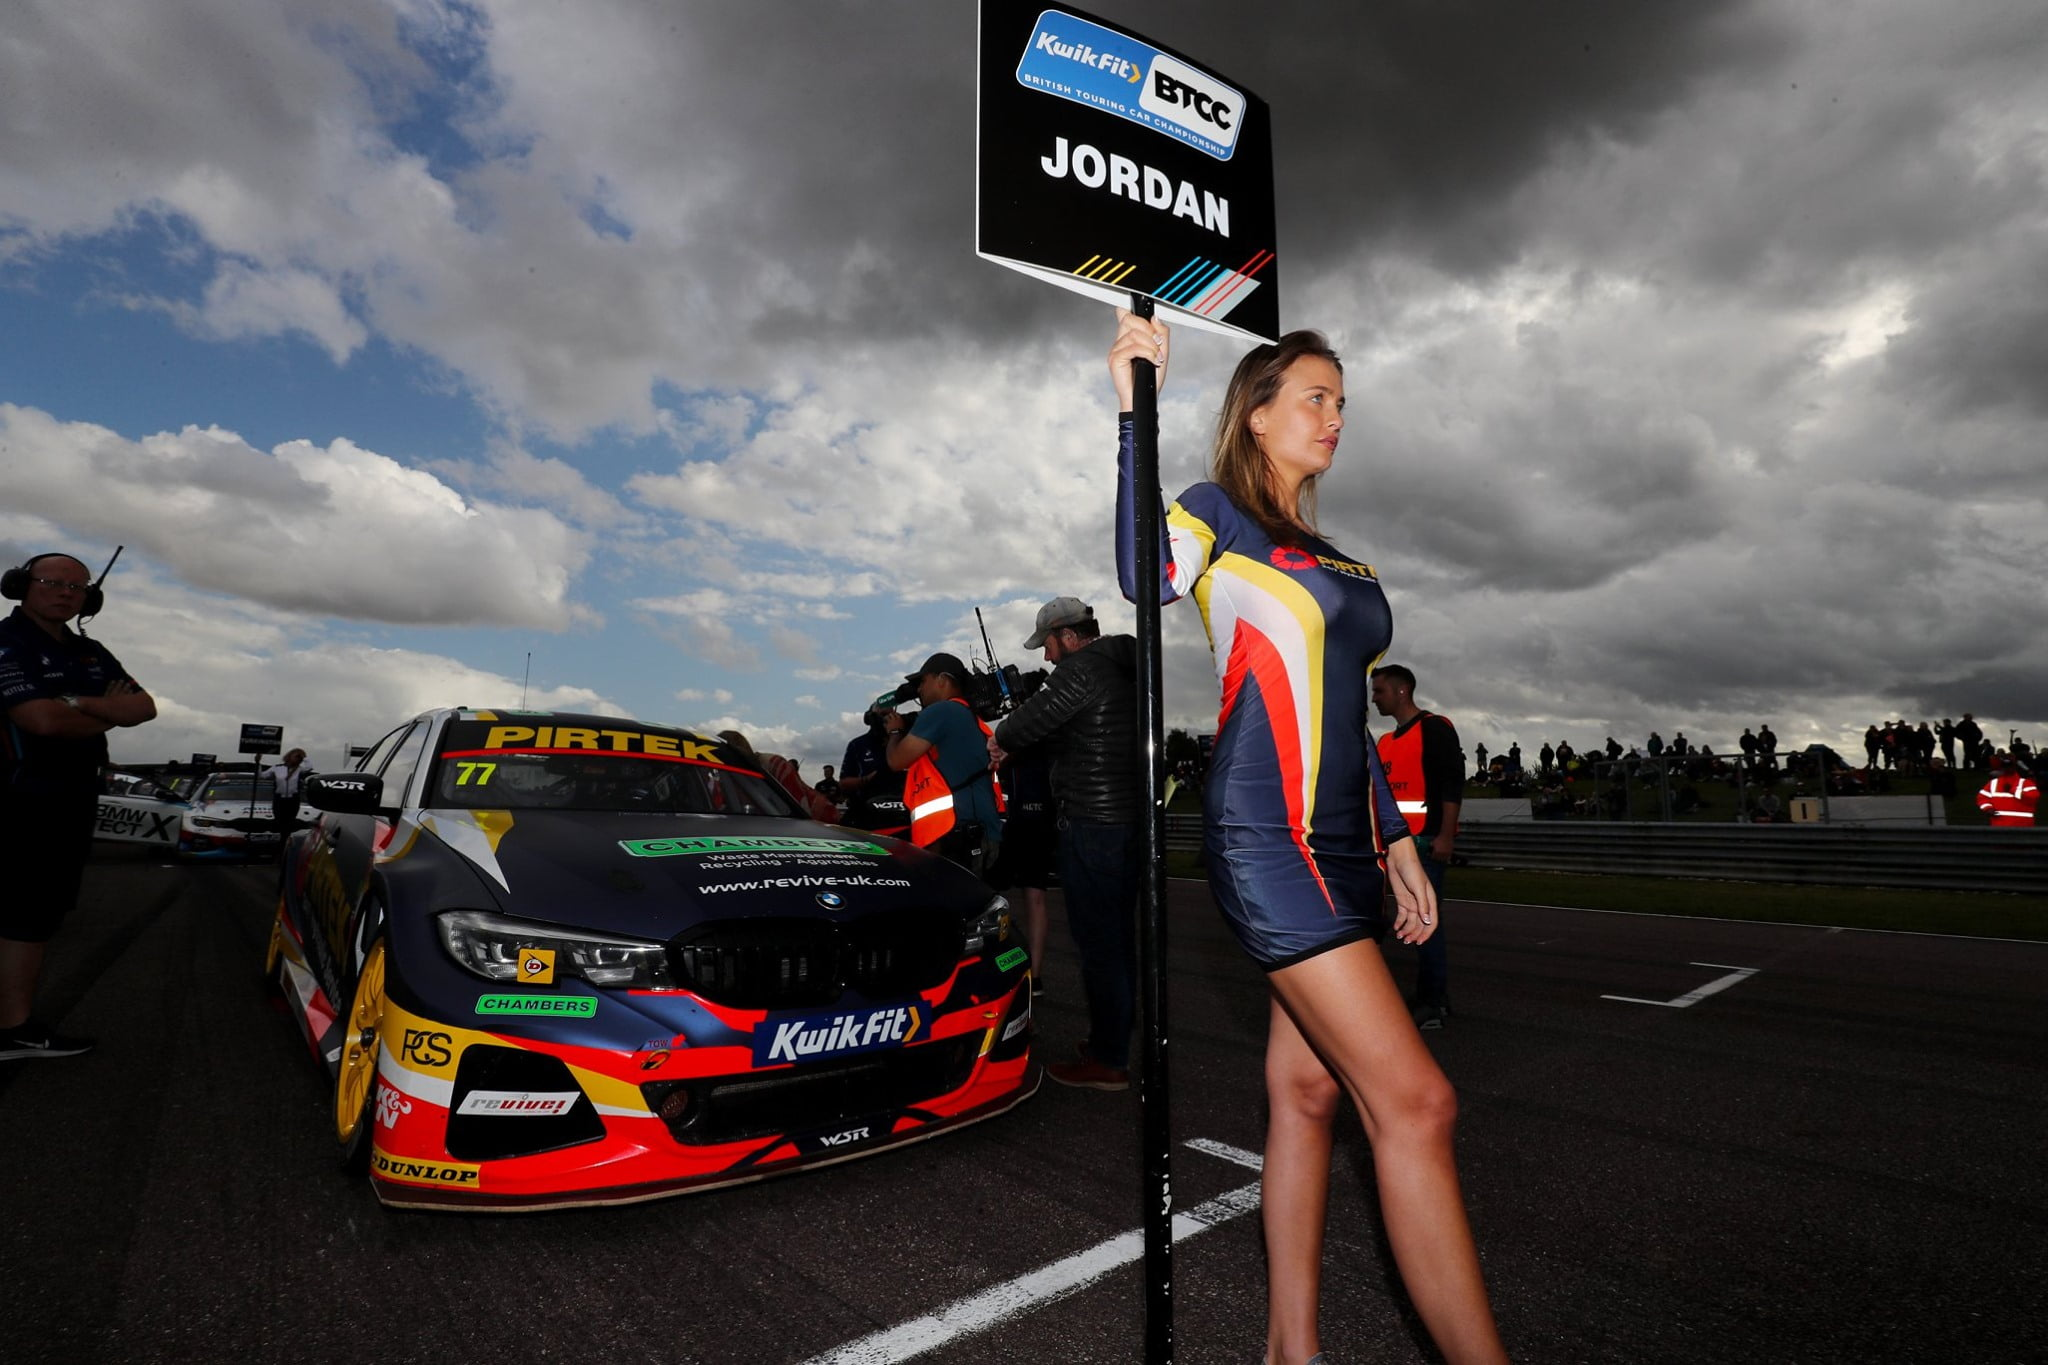 BMW Pirtek Racing BTCC at Thruxton BTCC on Sunday 18th August 2019